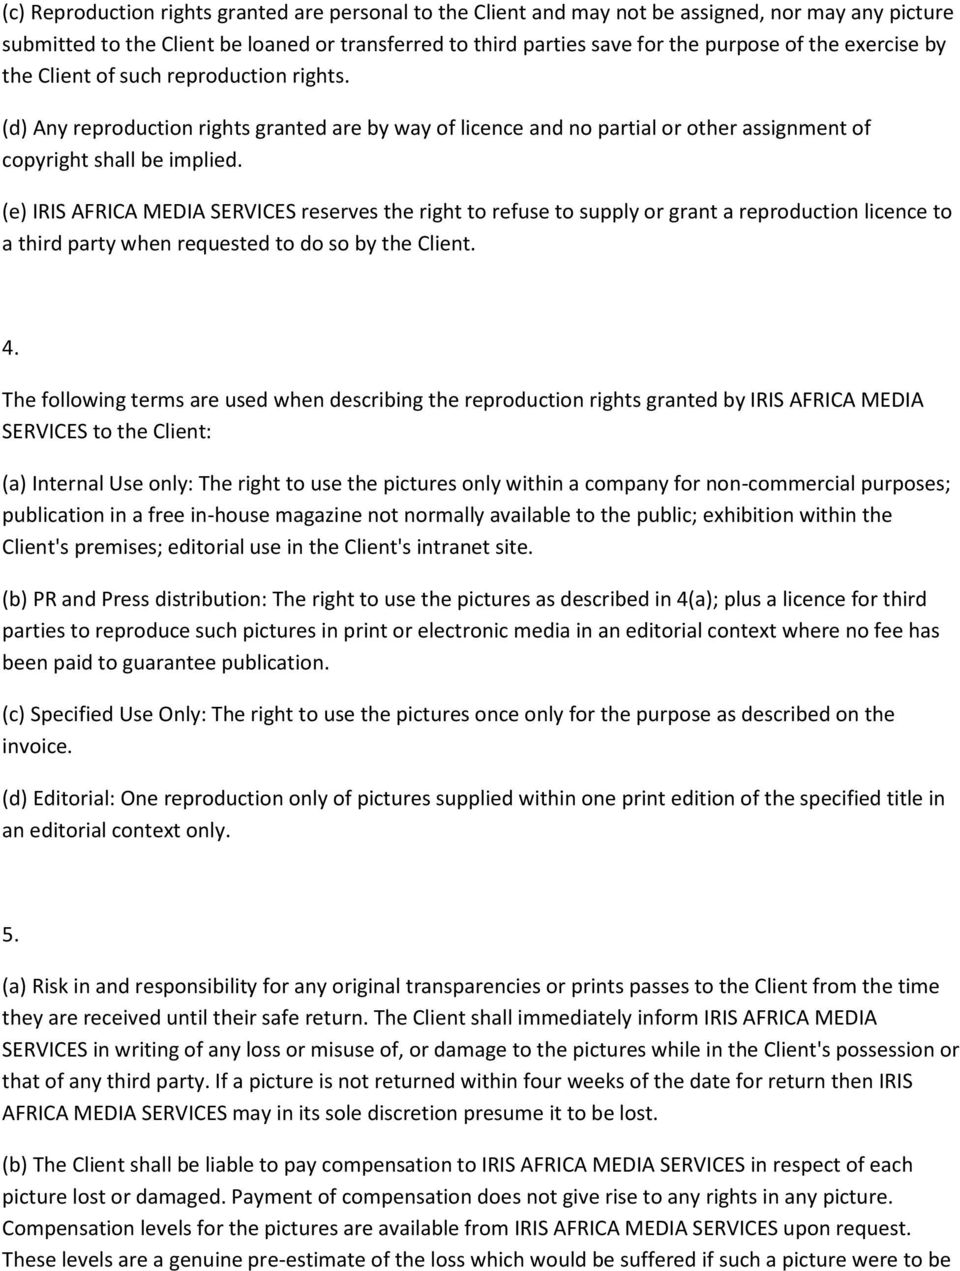 (e) IRIS AFRICA MEDIA SERVICES reserves the right to refuse to supply or grant a reproduction licence to a third party when requested to do so by the Client. 4.